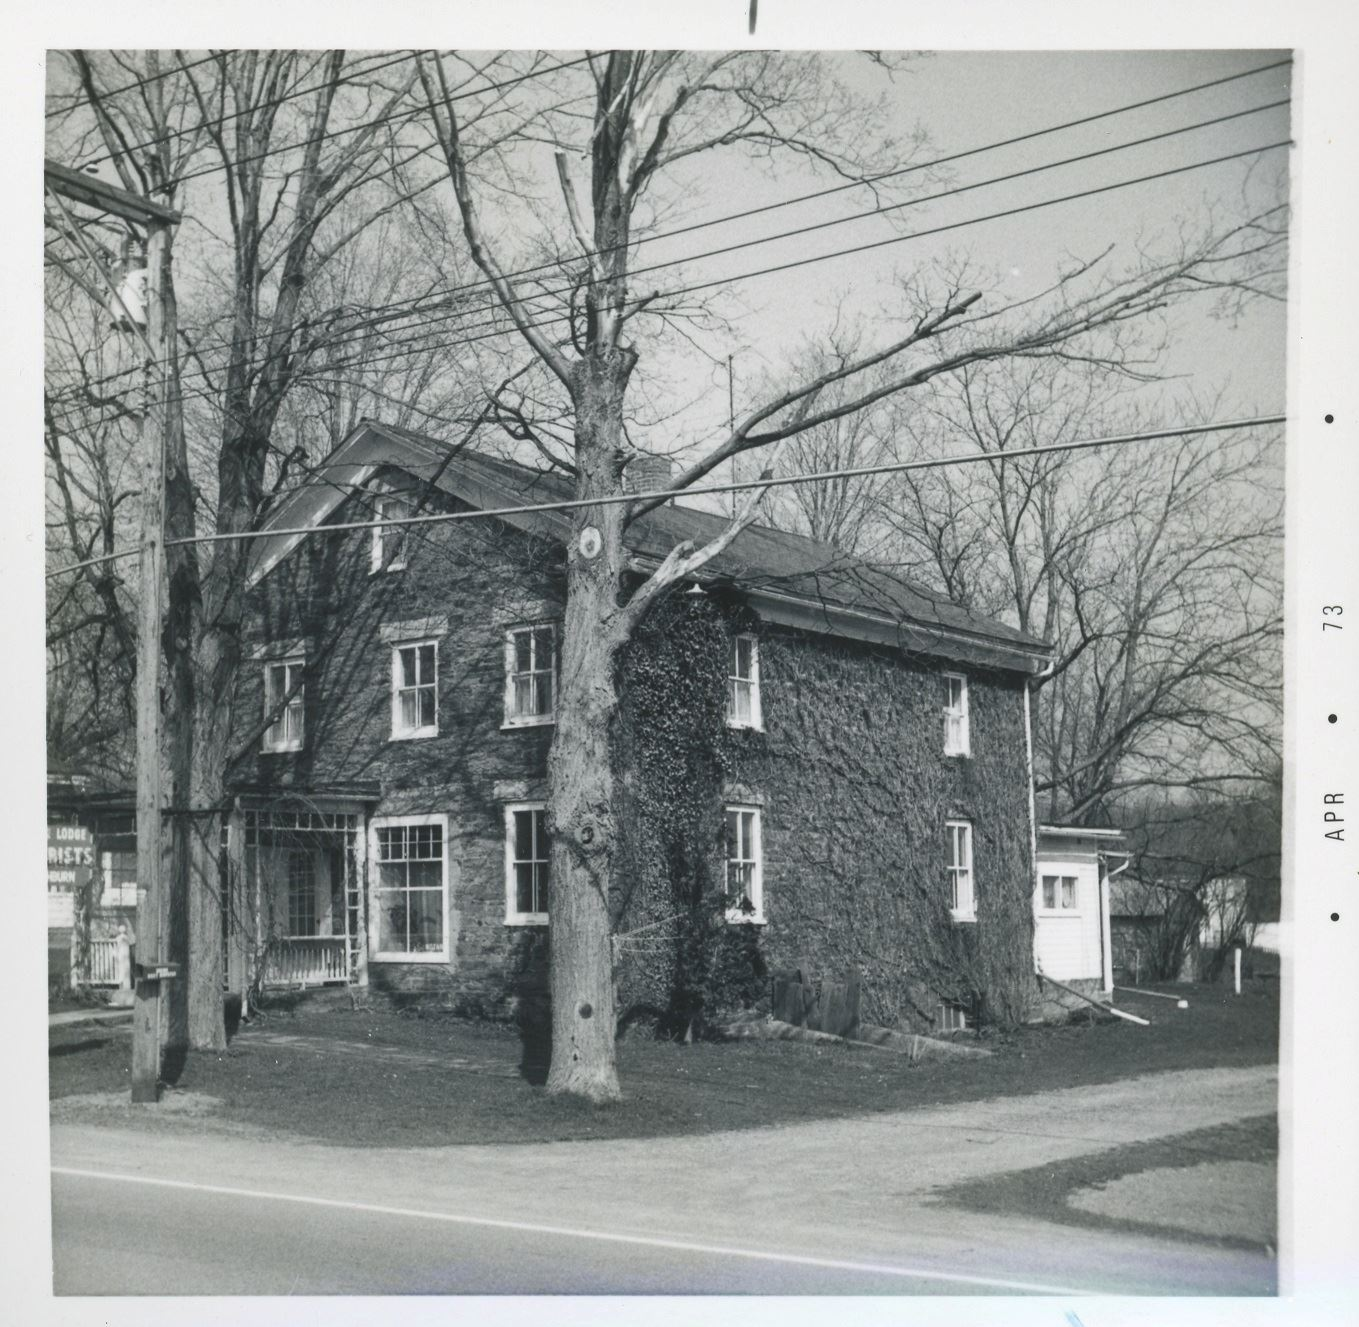 Route 20 east end of Bouckville north side stone house Washburn 20 April 1973